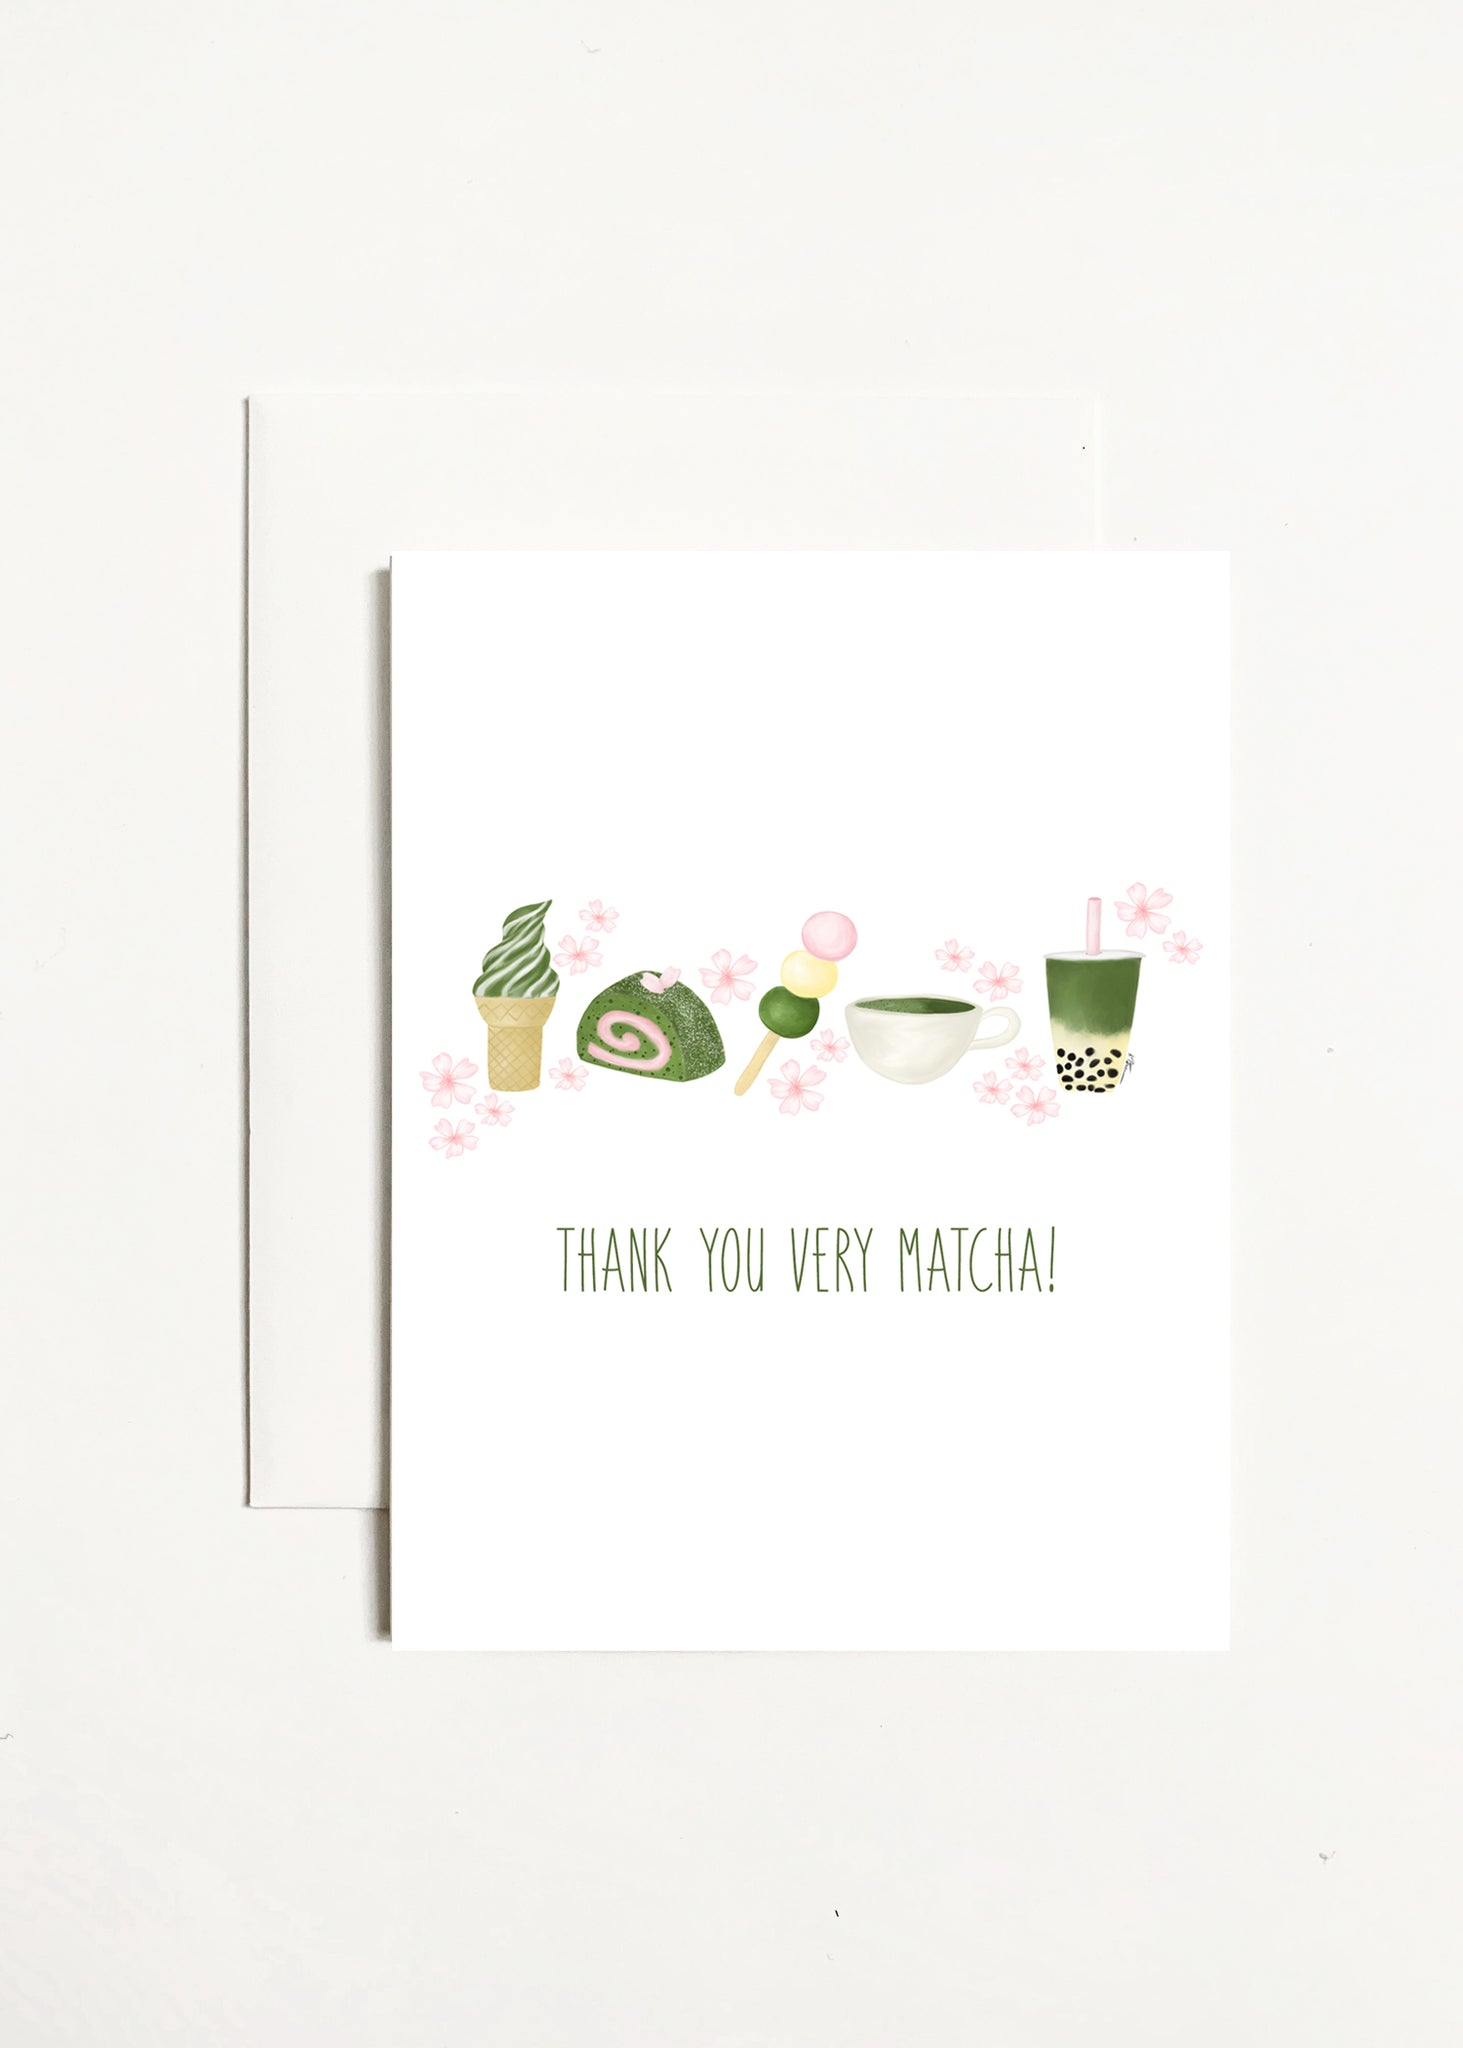 Thank You Very Matcha!